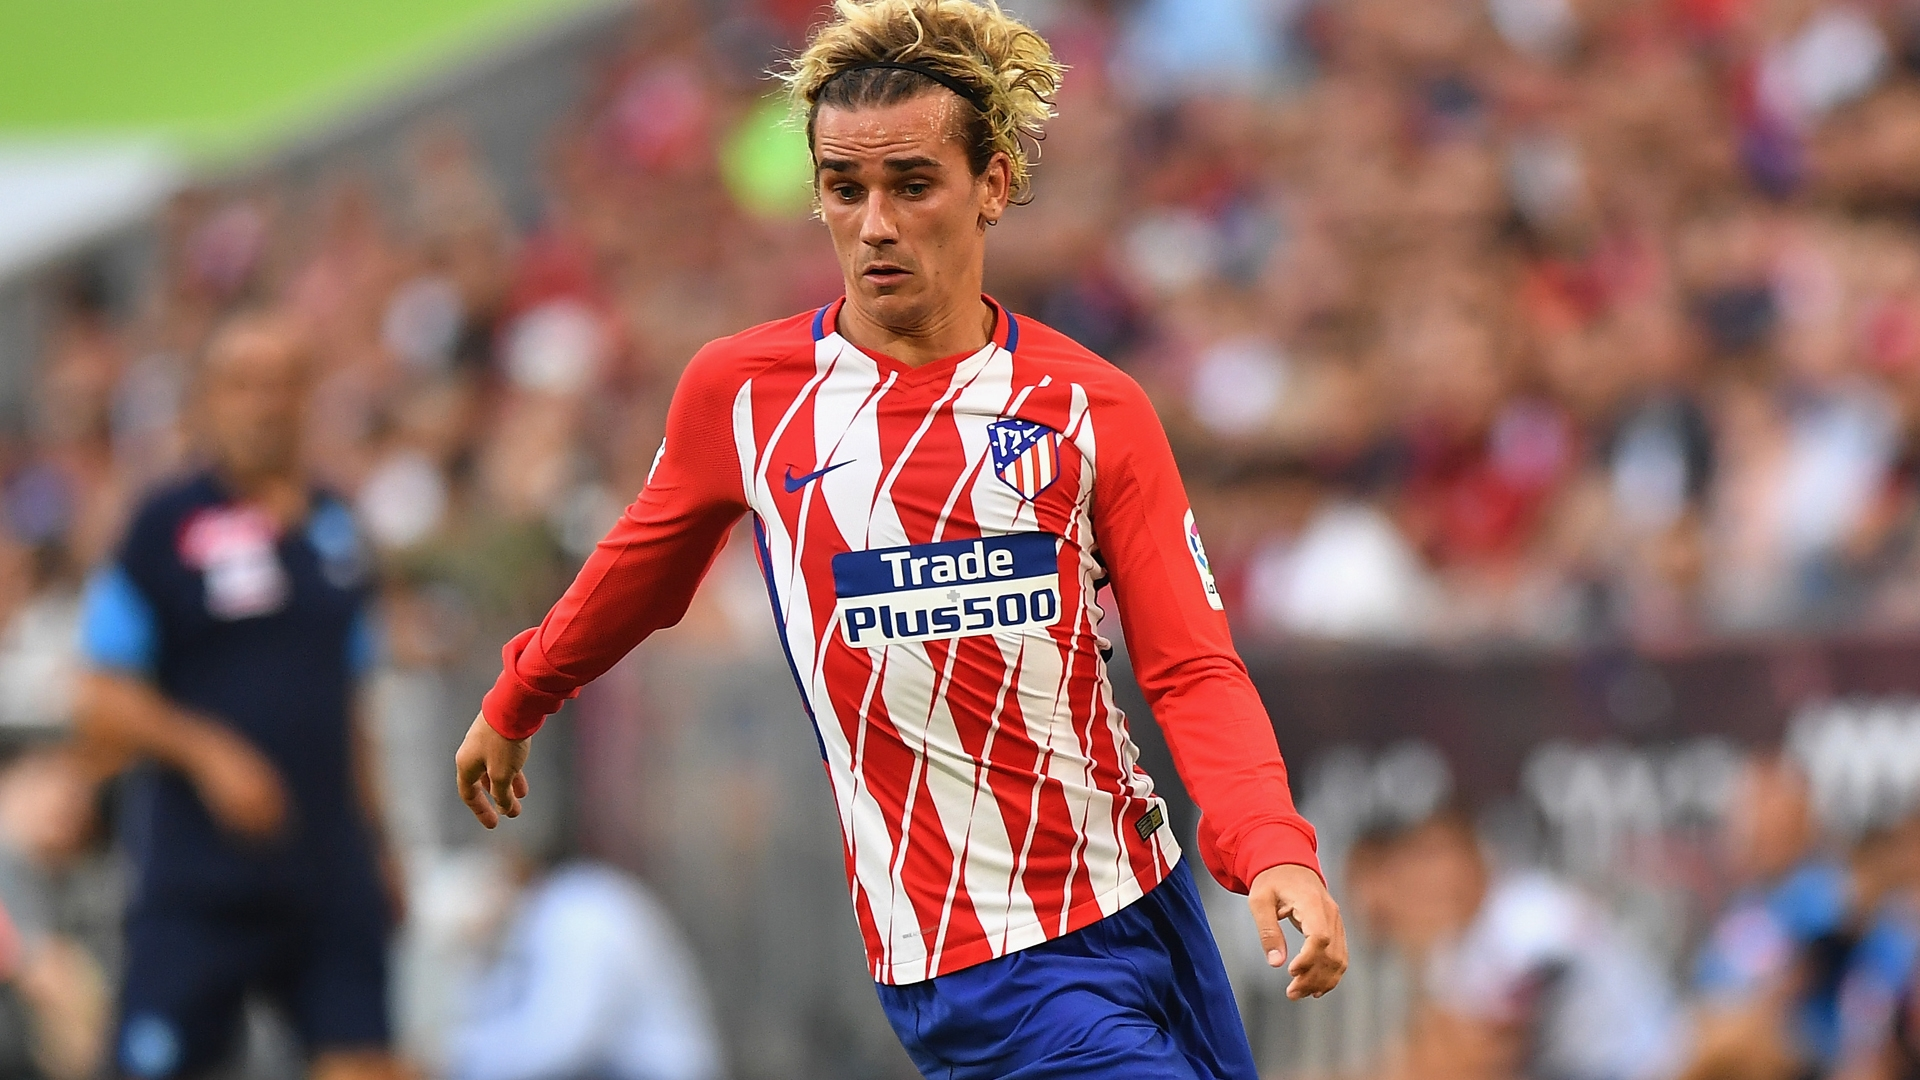 Griezmann showed his support towards the club and announced he could not consider departing the club in such an important time.